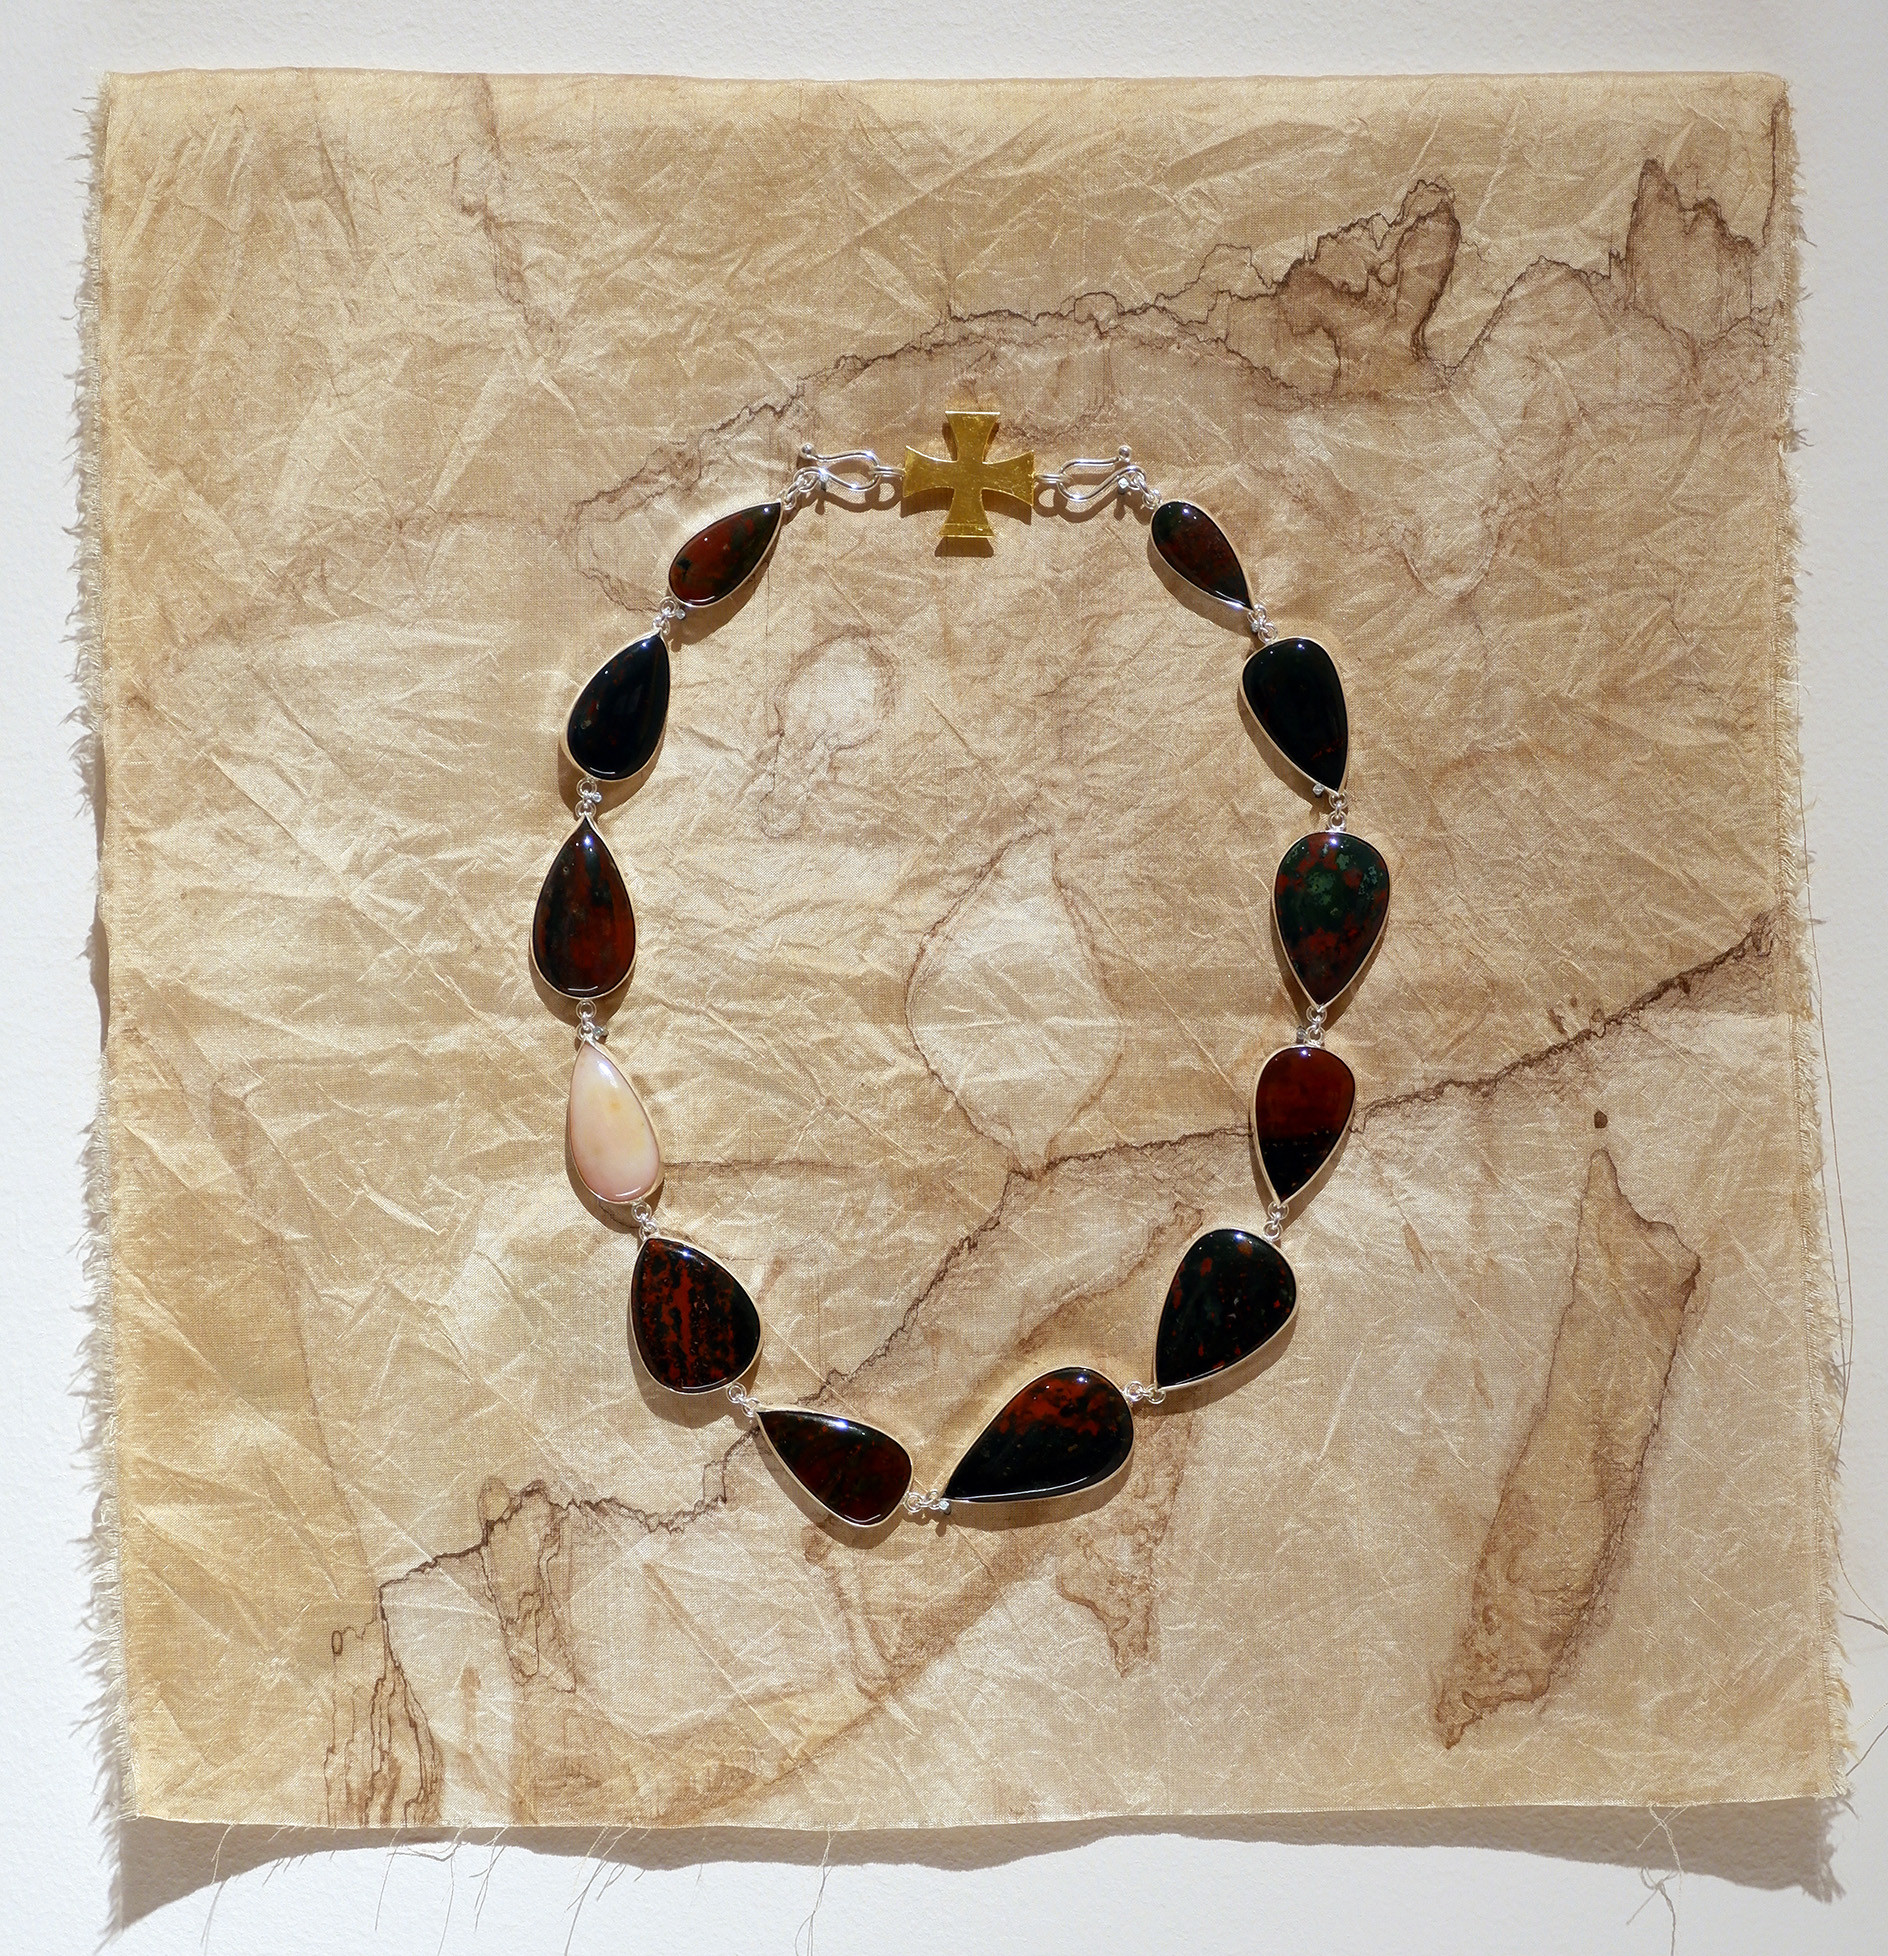 Inger Grubbe 12 Tears Sterling silver, 24 carat gold foil, bloodstone and pink opal 45 x 45 x 4 cm